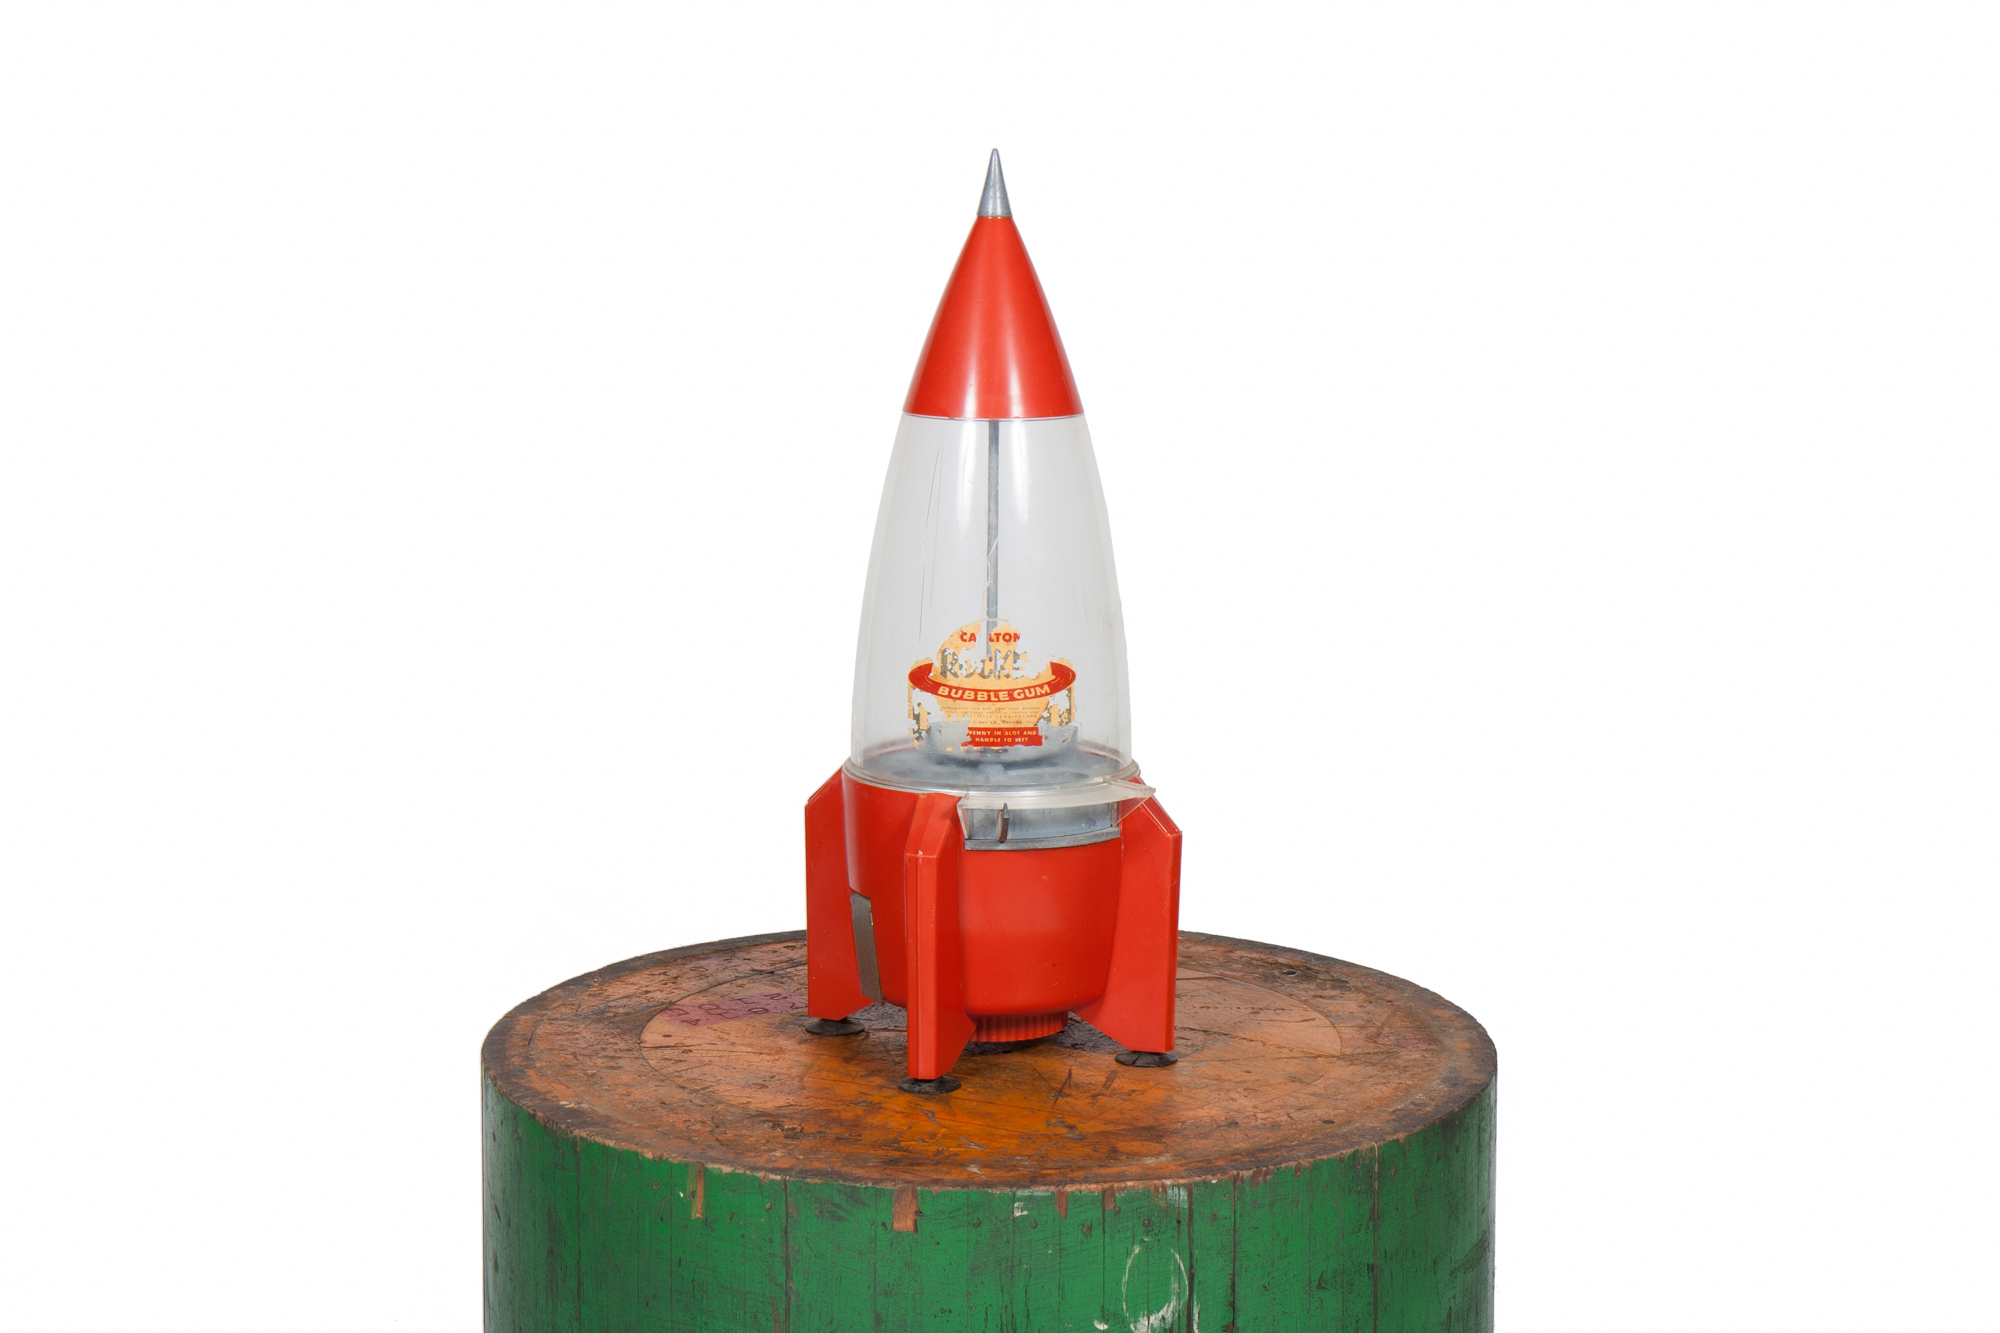 Rocket Gumball Machine (circa 1955)